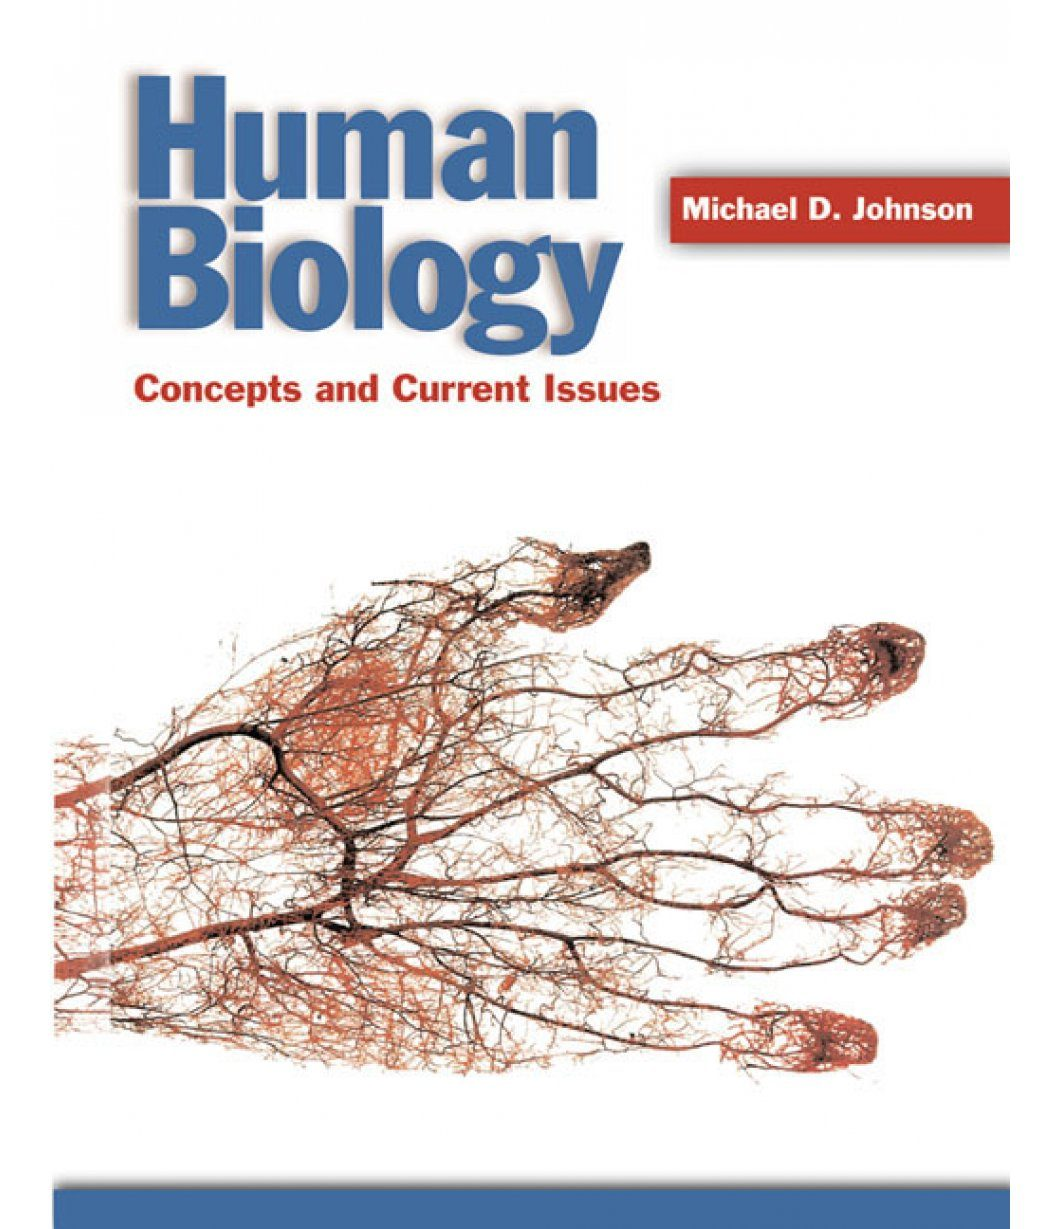 Human Biology: Concepts and Current Issues#